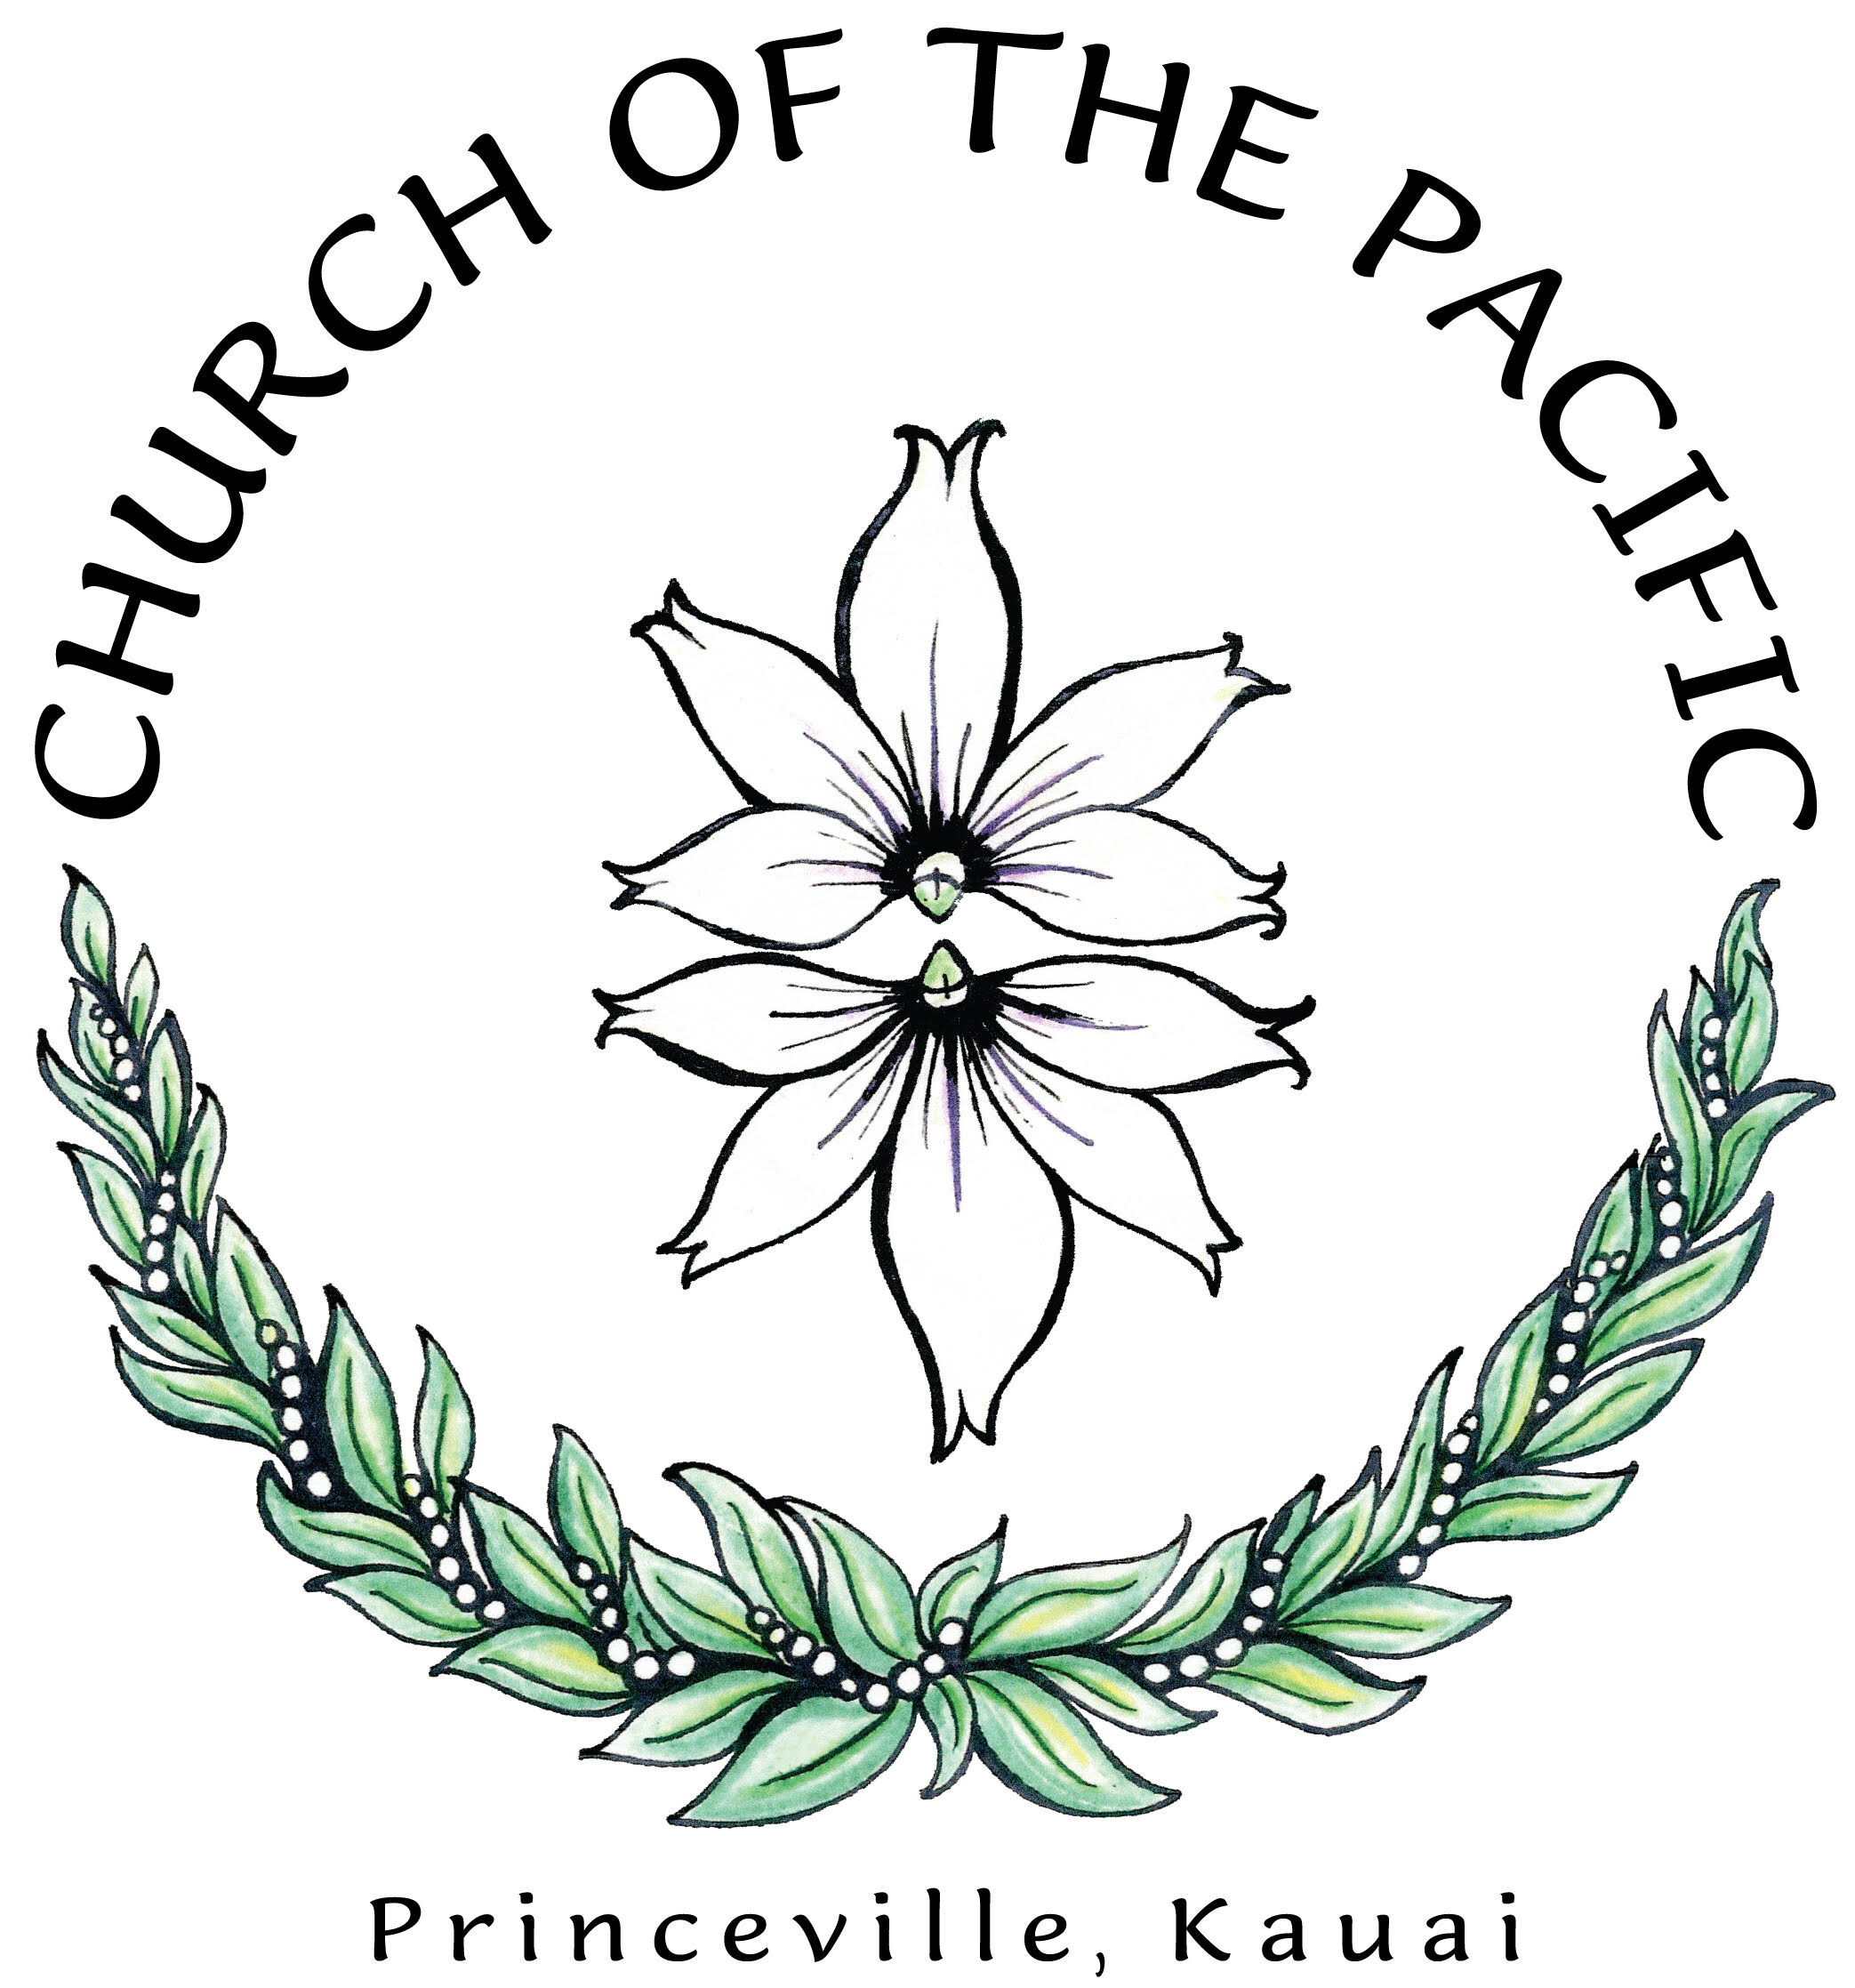 Church of the Pacific